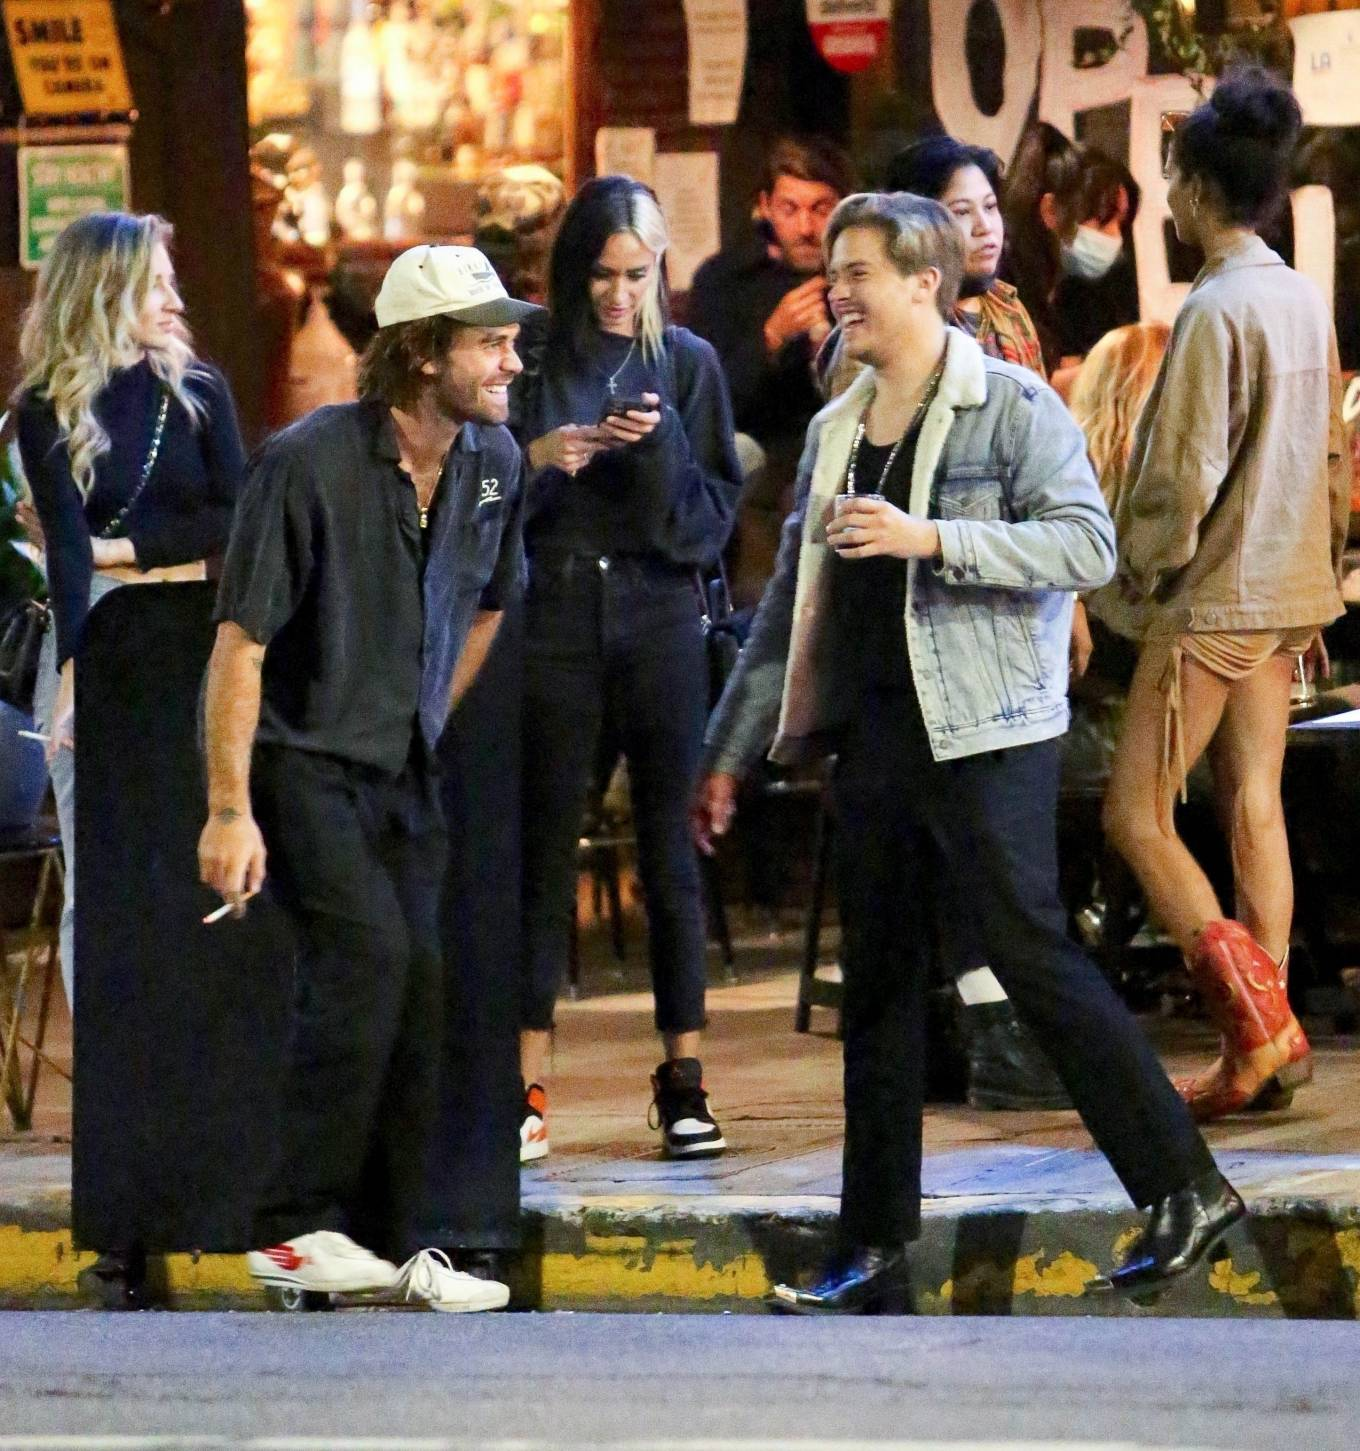 Barbara Palvin 2020 : Dylan Sprouse and Barbara Palvin with KJ Apa and Stella Maxwell – Night out in Silverlake -07